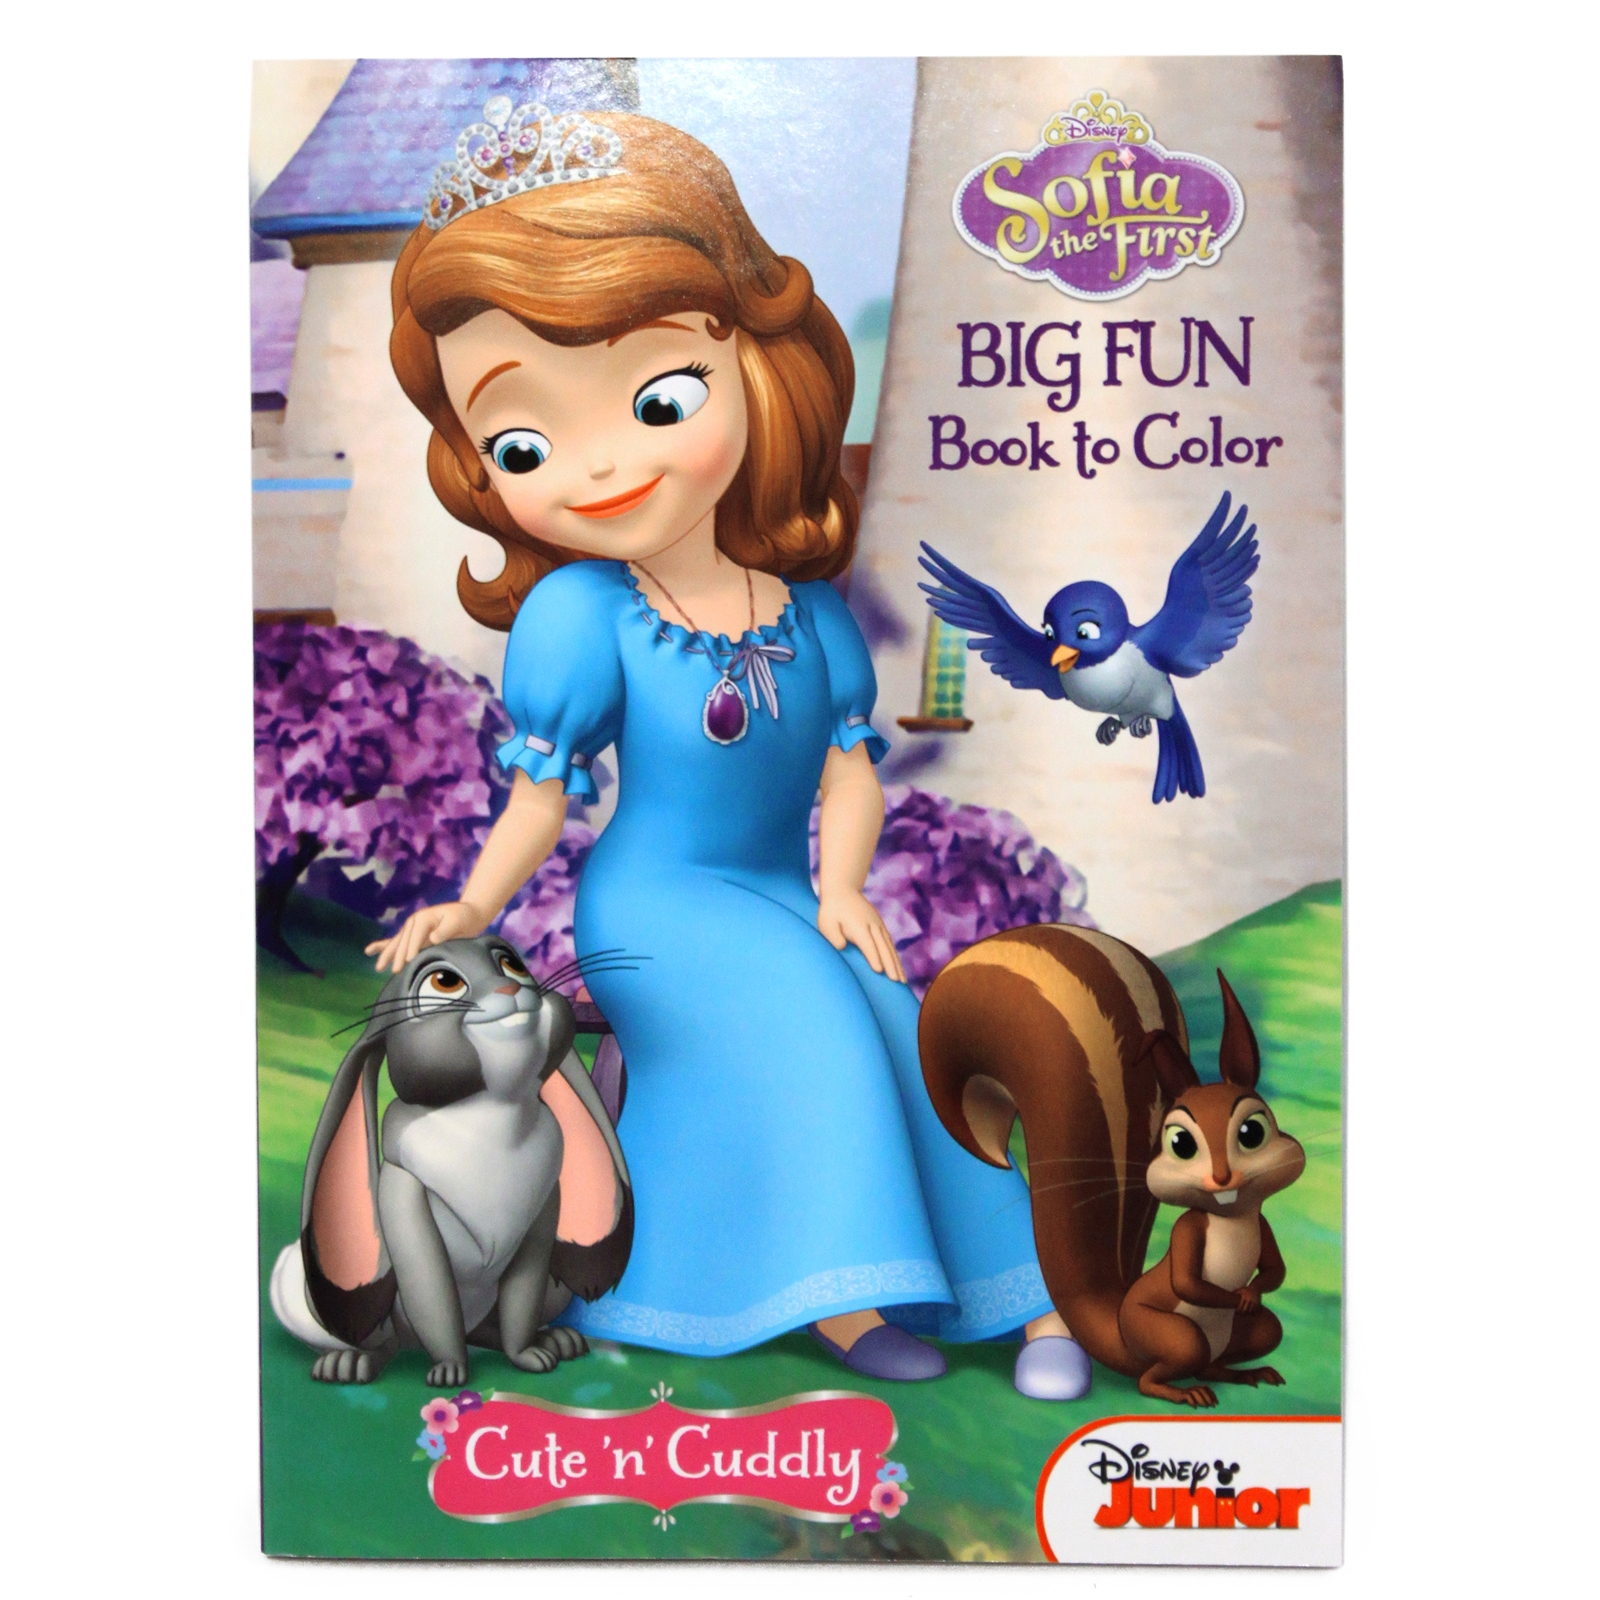 Sofia the First Big Fun Book to Color Activity Coloring Book